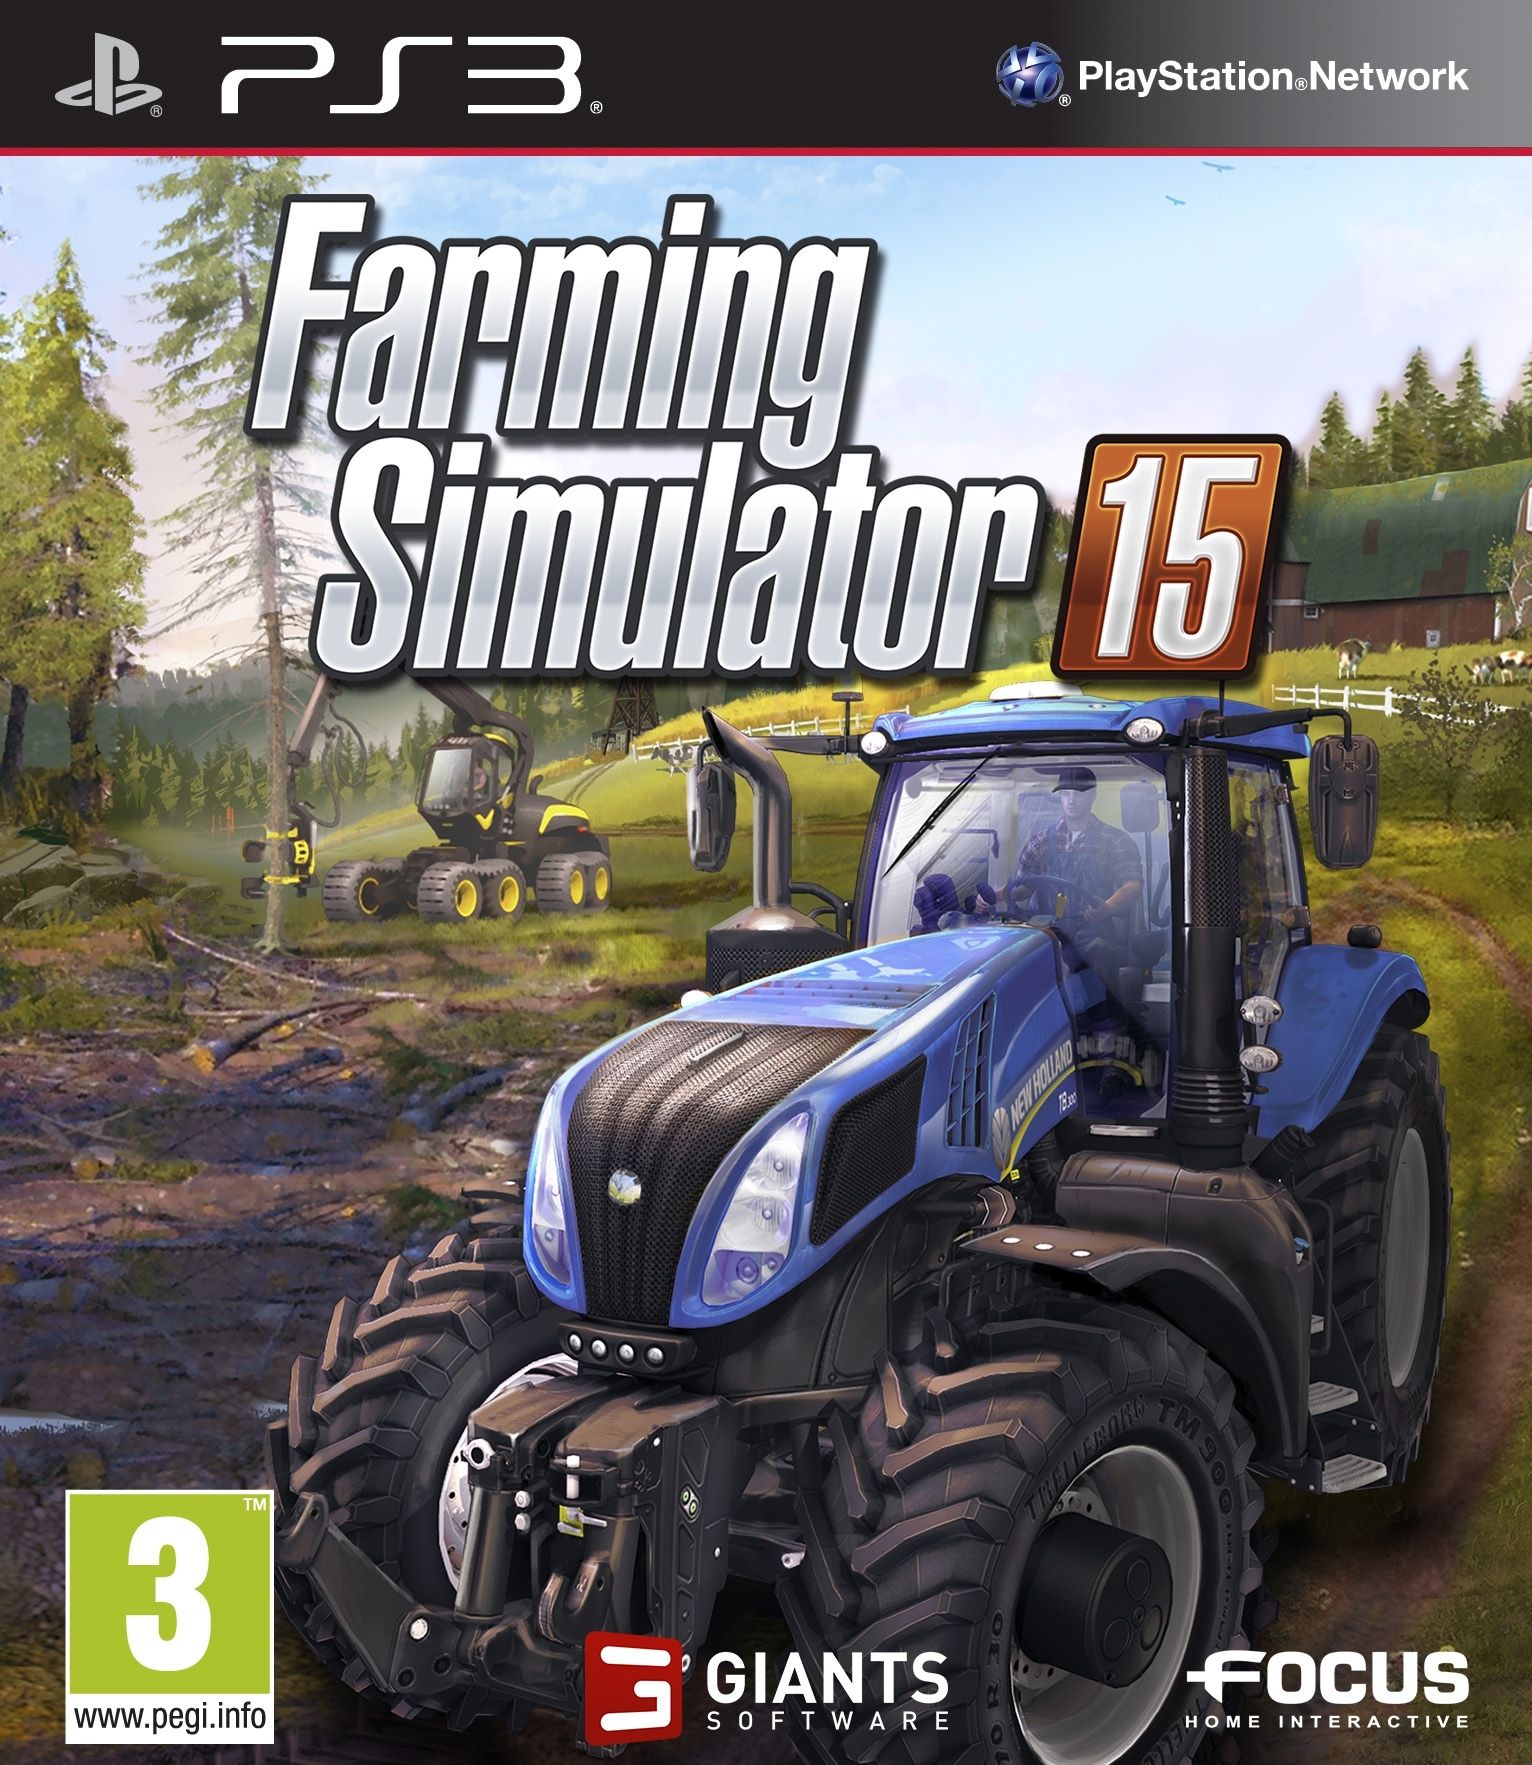 Symulator Farmy 15 Farming Simulator 15 2015 (PS3)